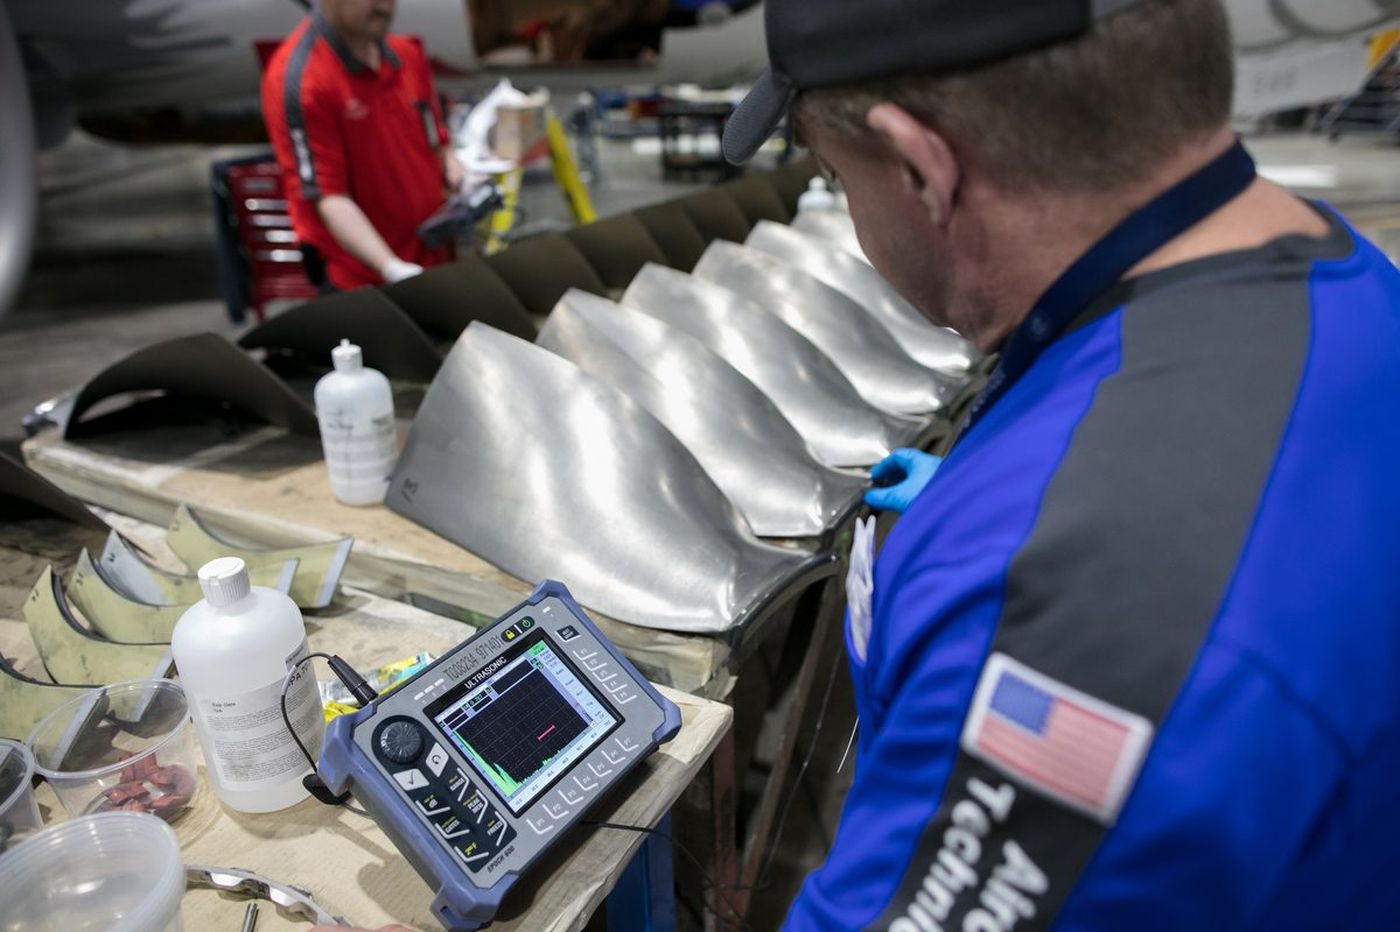 Southwest aftermath: FAA inspection rule affects 681 engines